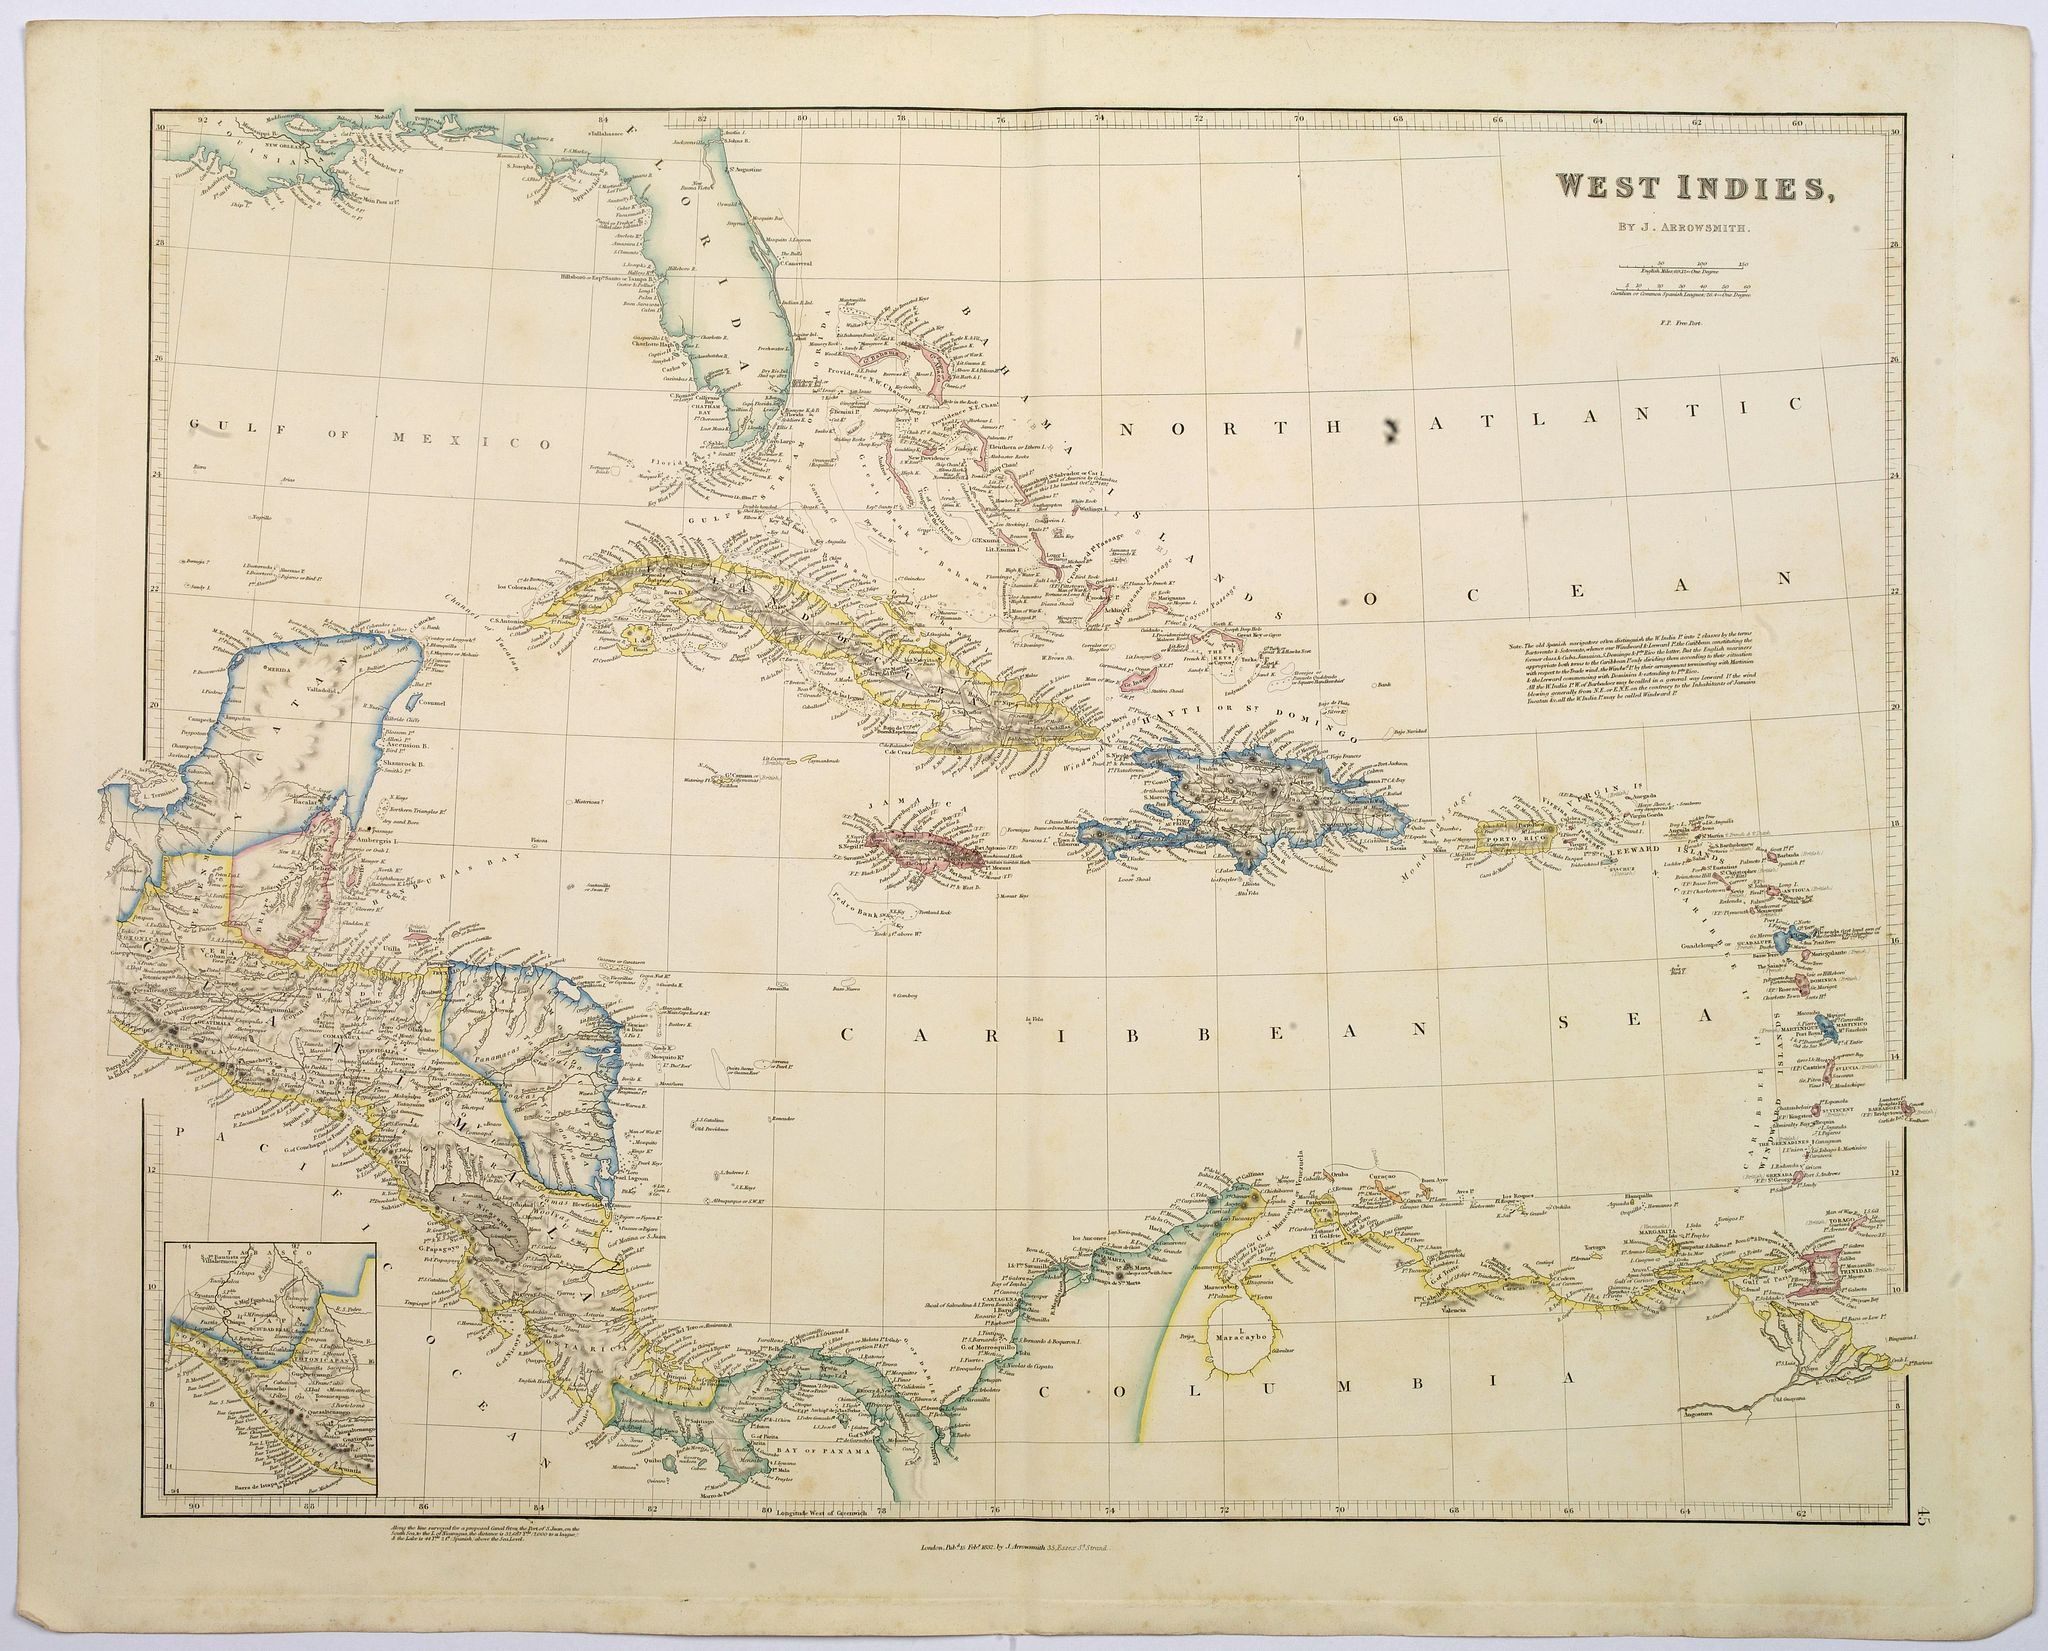 ARROWSMITH, John.,  West Indies., antique map, old maps